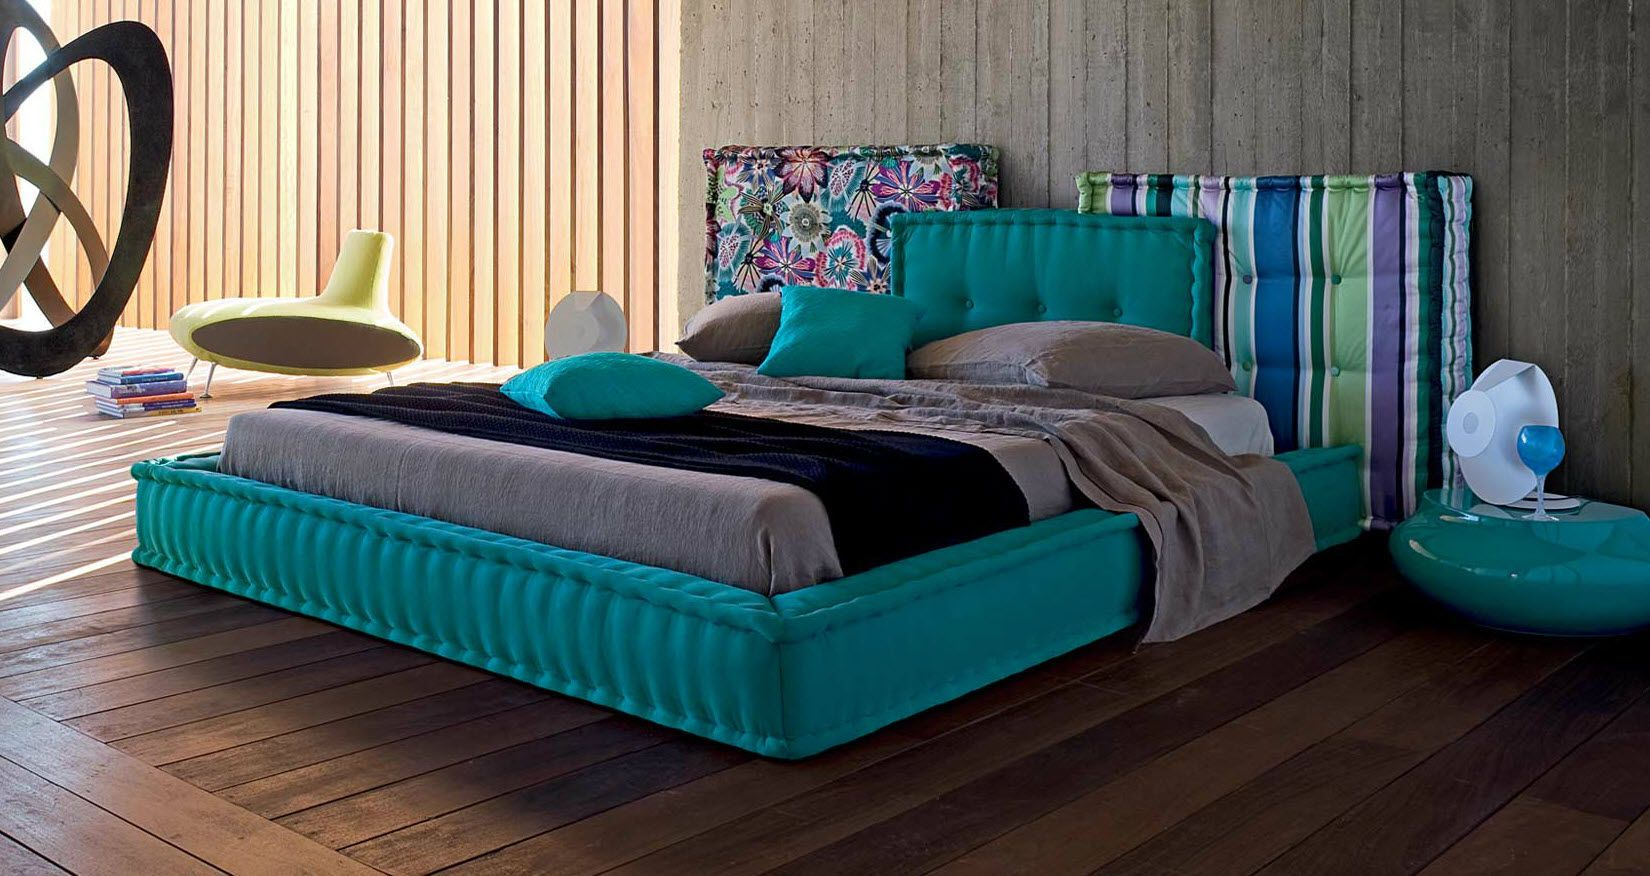 Camere Da Letto Roche Bobois.Double Bed Contemporary Upholstered Les Contemporains Mah Jong